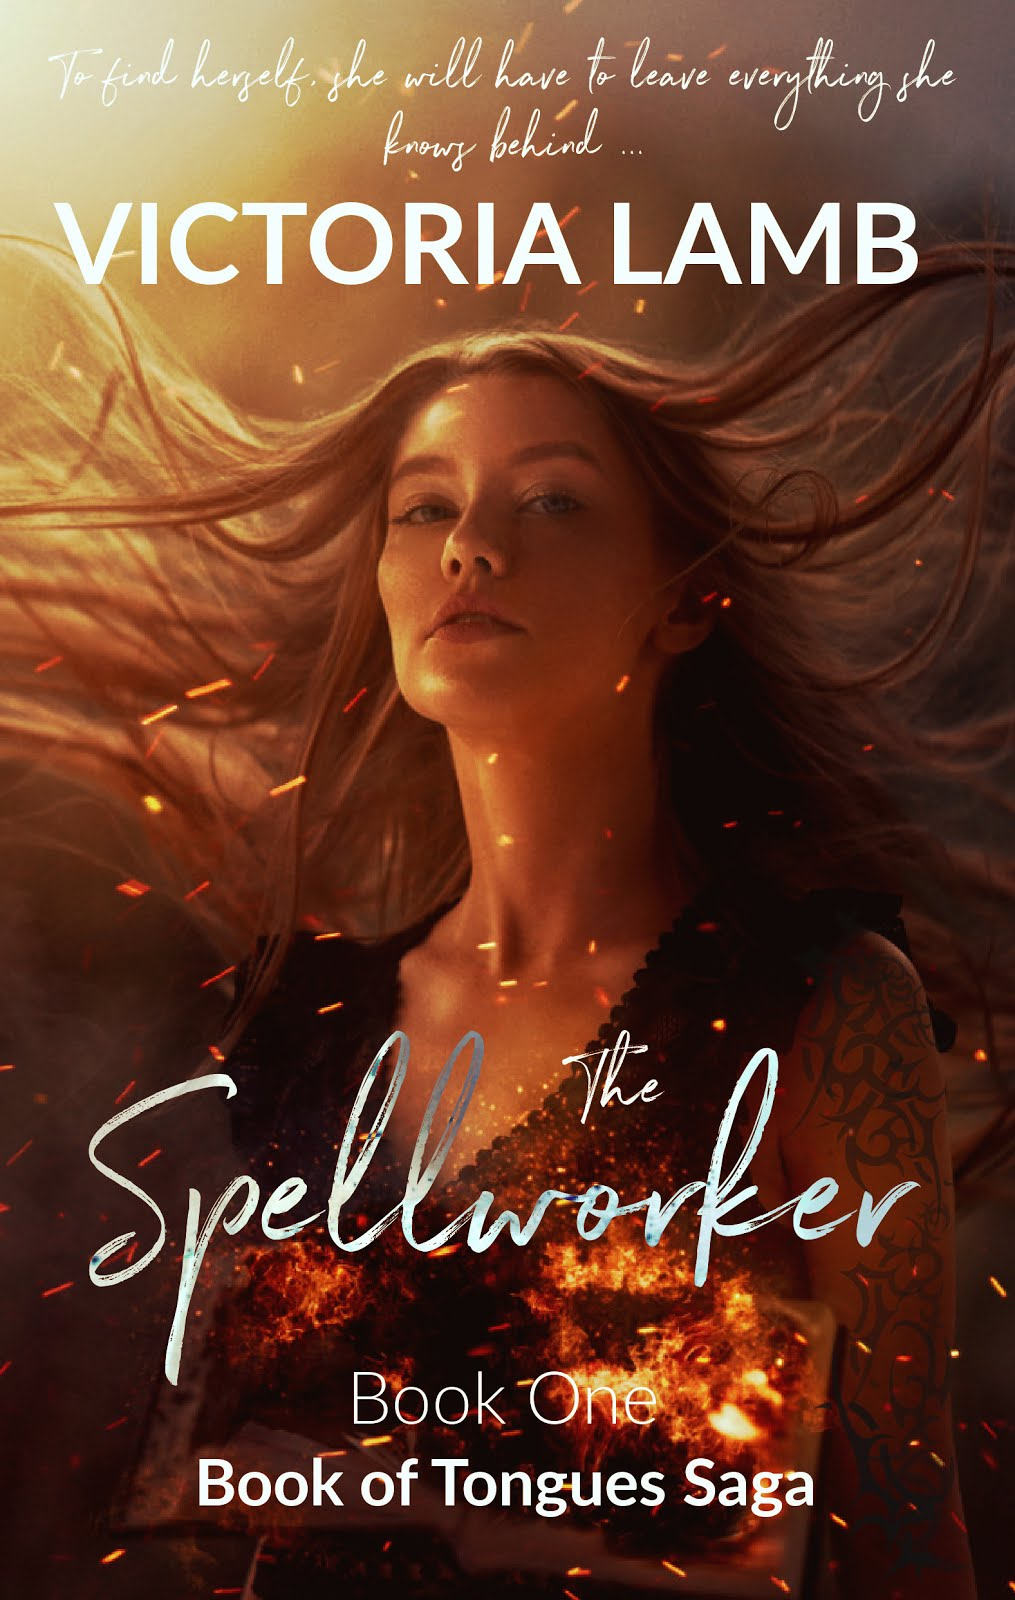 The Spellworker: out now!